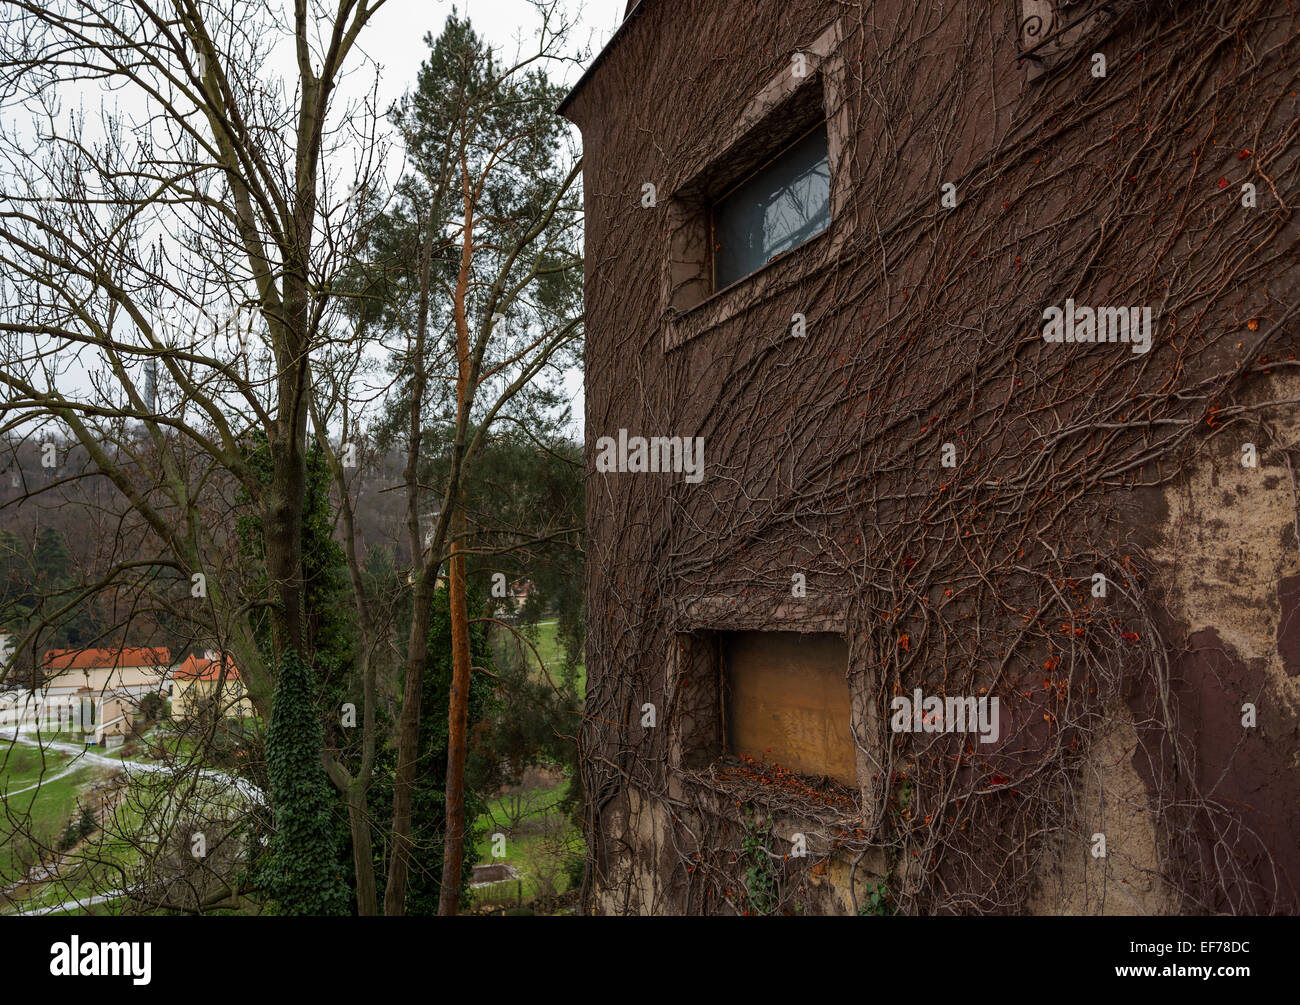 House wall covered by dead brown ivy vines. - Stock Image